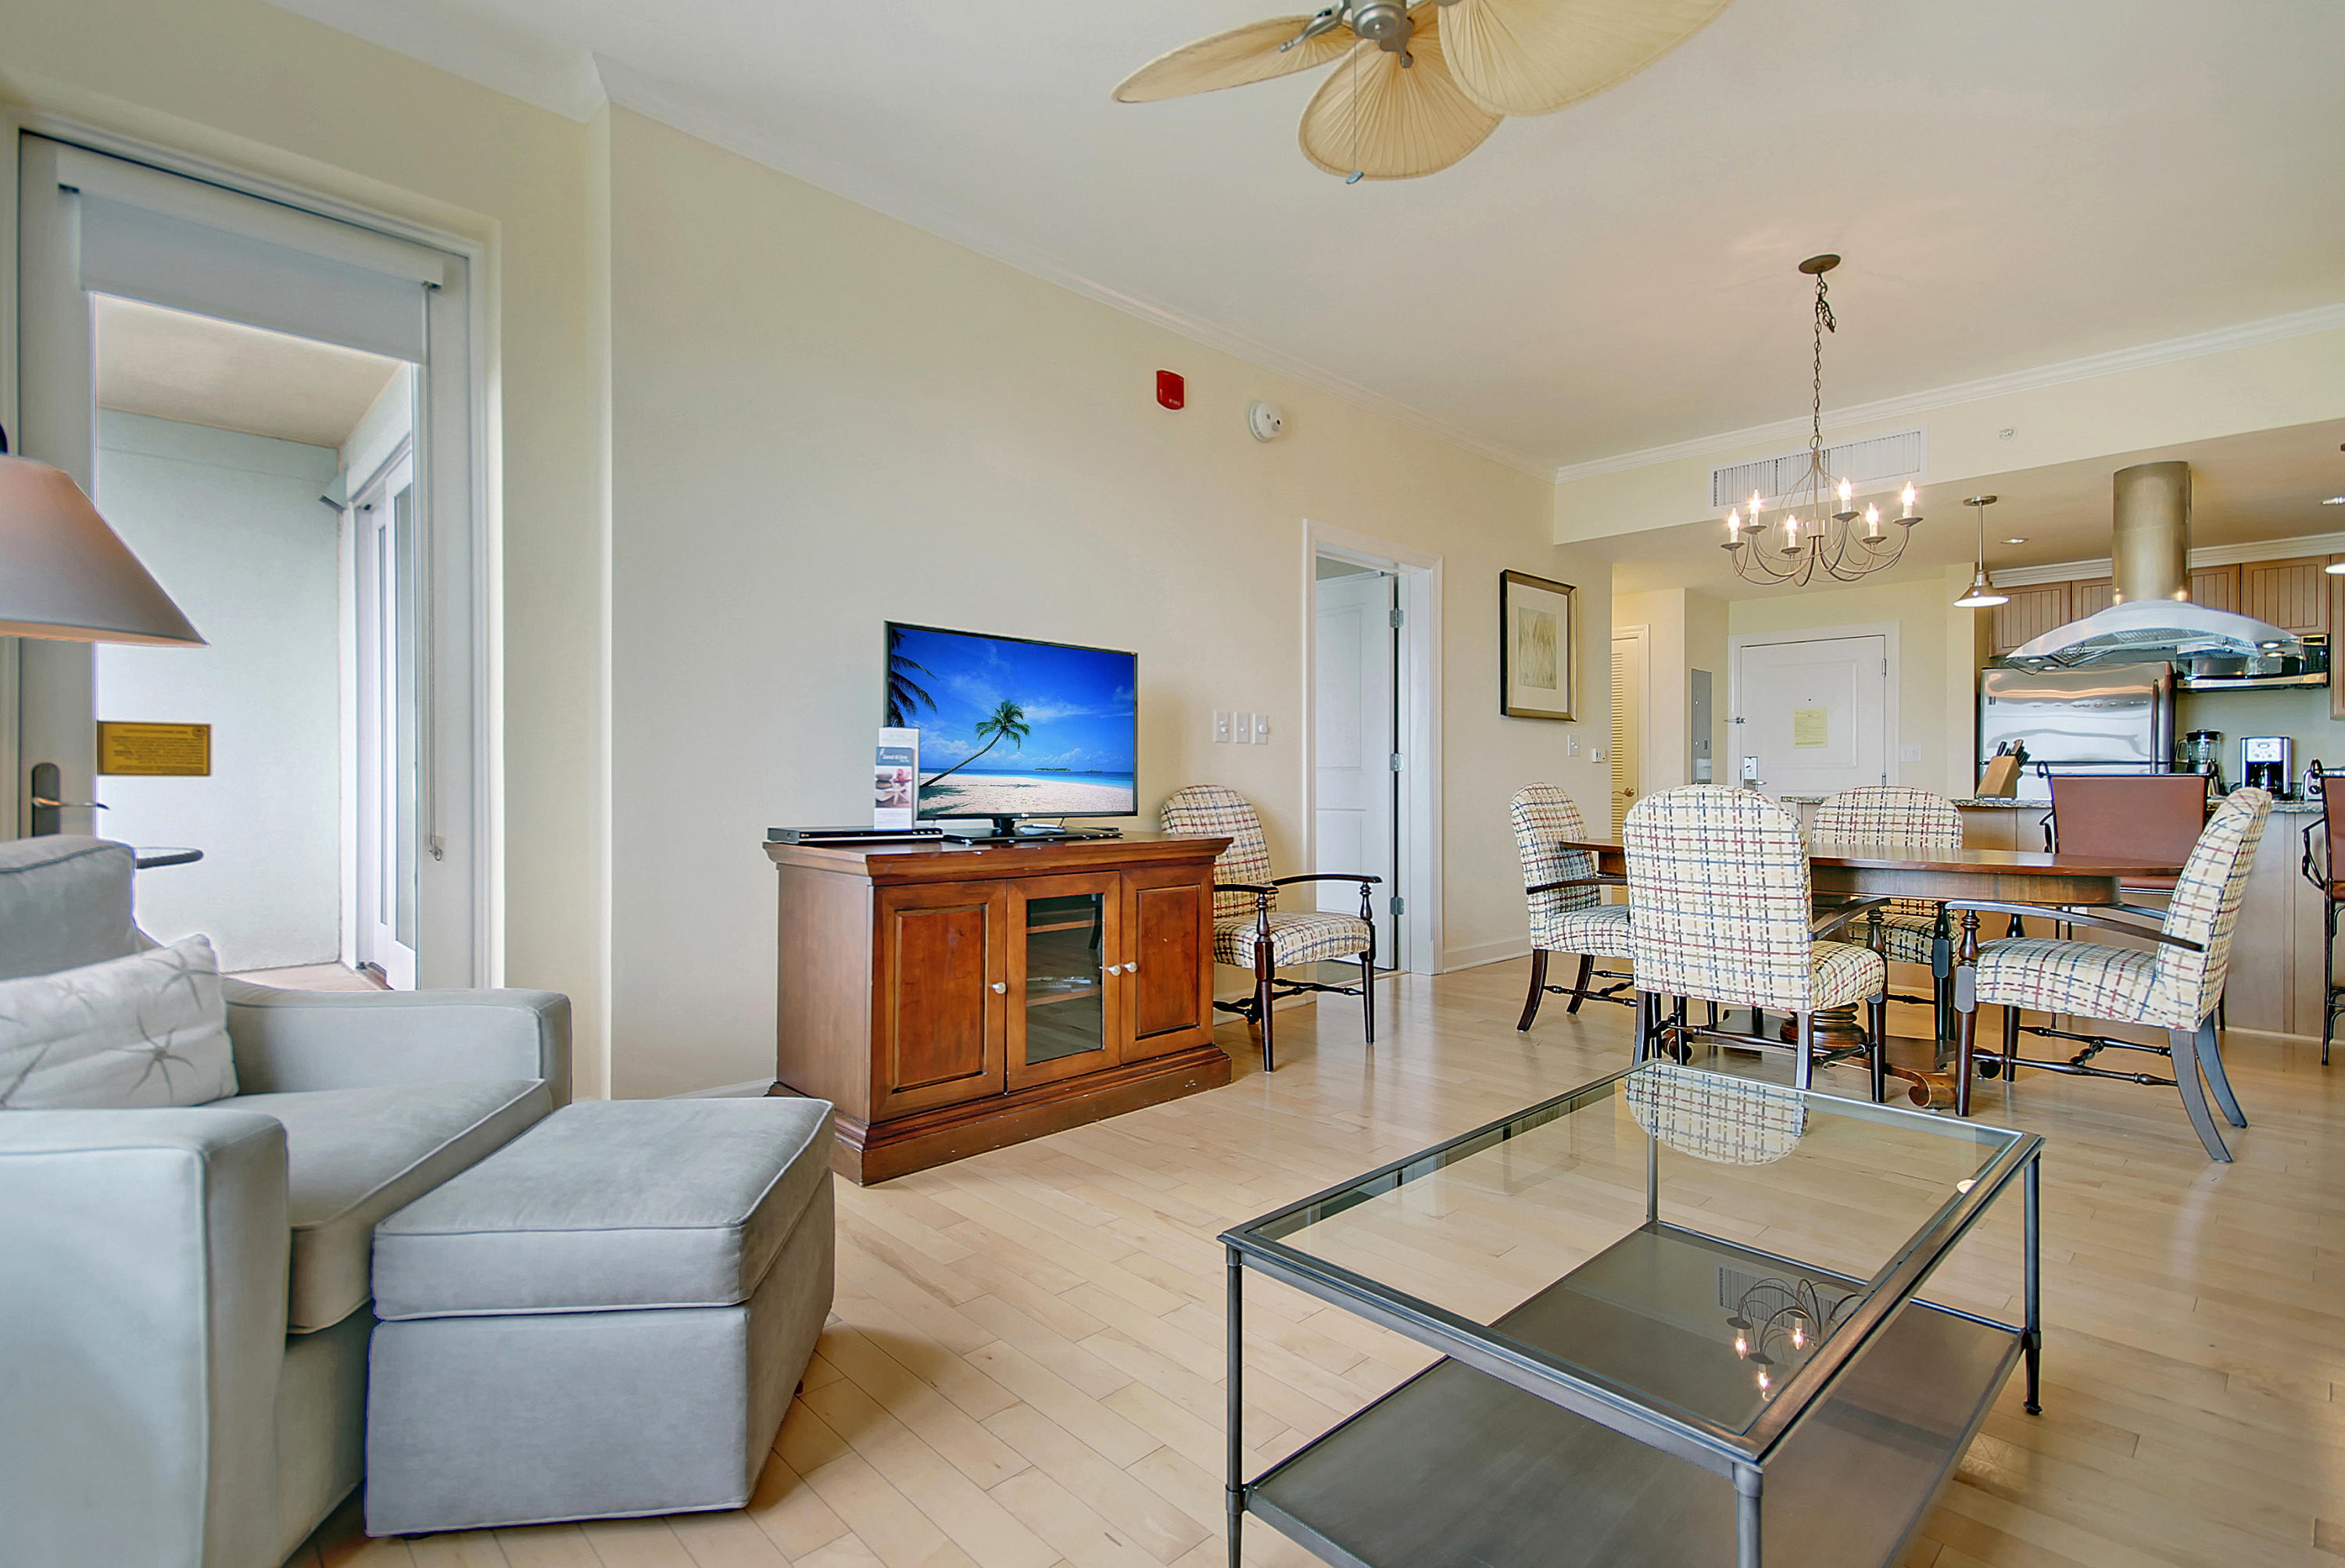 Wild Dunes Homes For Sale - 415/417-B The Village At Wild Dunes, Isle of Palms, SC - 7